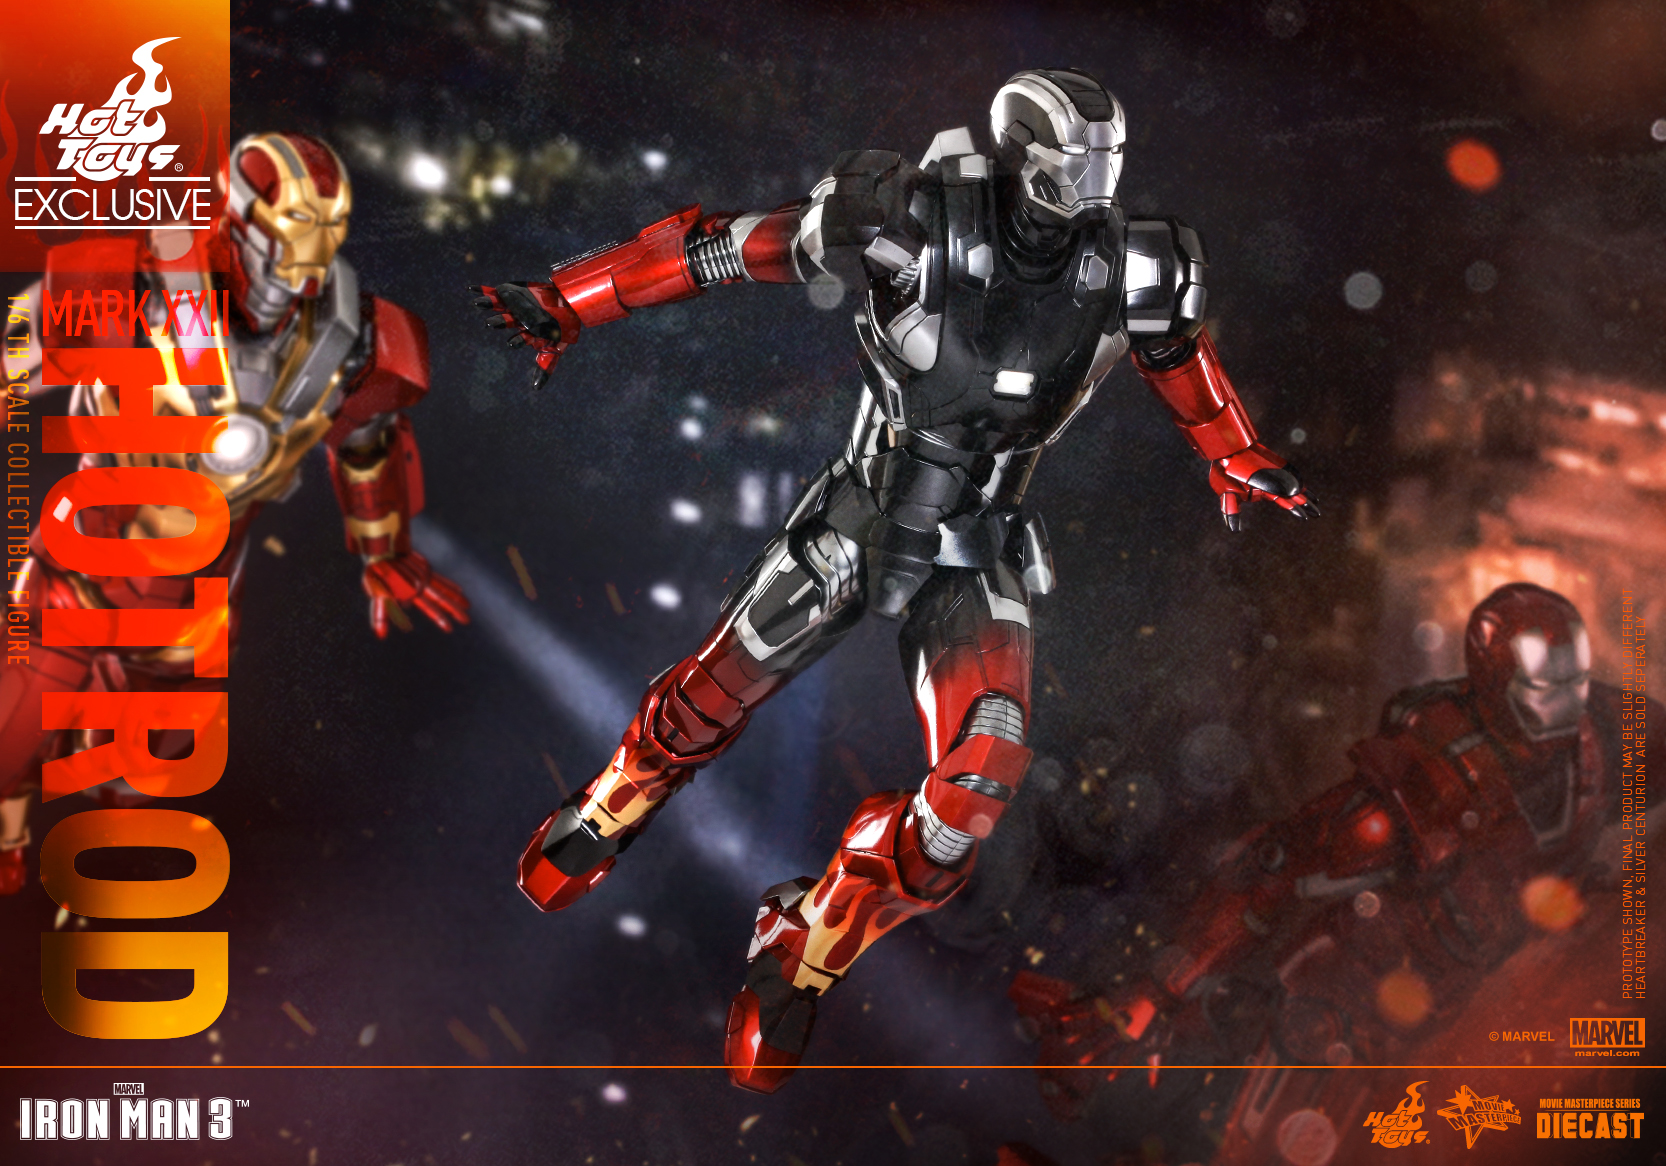 Hot-Toys-Iron-Man-3-Hot-Rod-Mark-XXII-Collectible-Figure-Hot-Toys-Exclusive_PR13